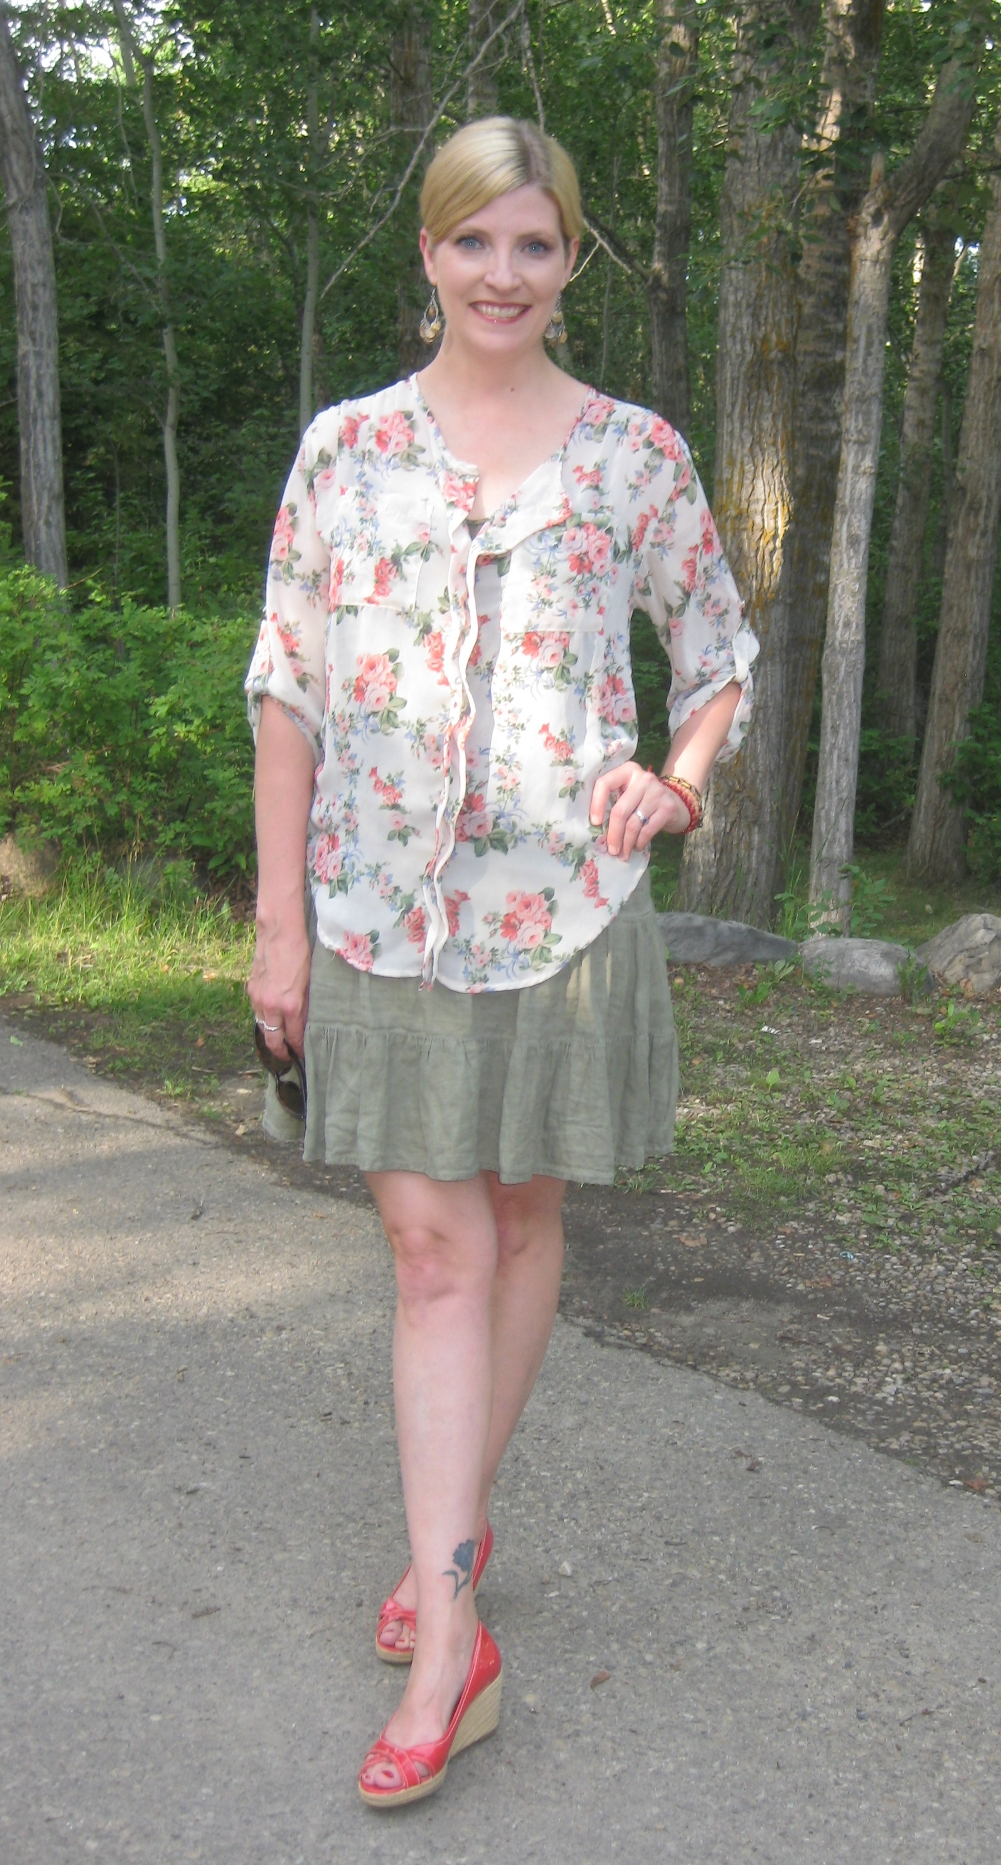 Floral blouse $3.50, olive skirt from Refind Consignment $13.60, coral wedges $7.70